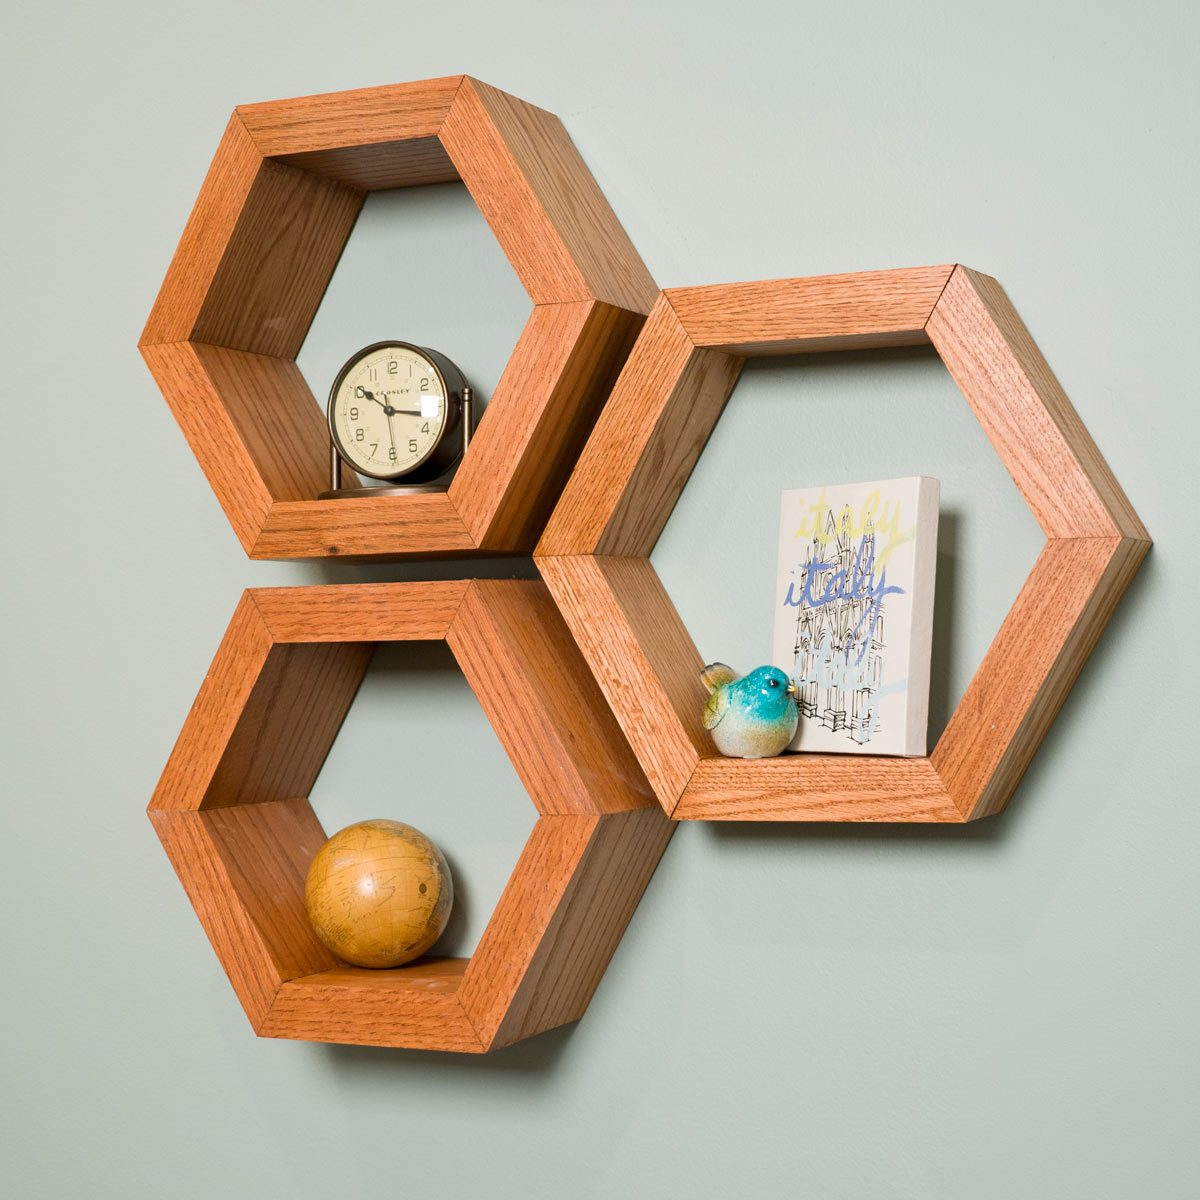 Hexagon Shelves Photo